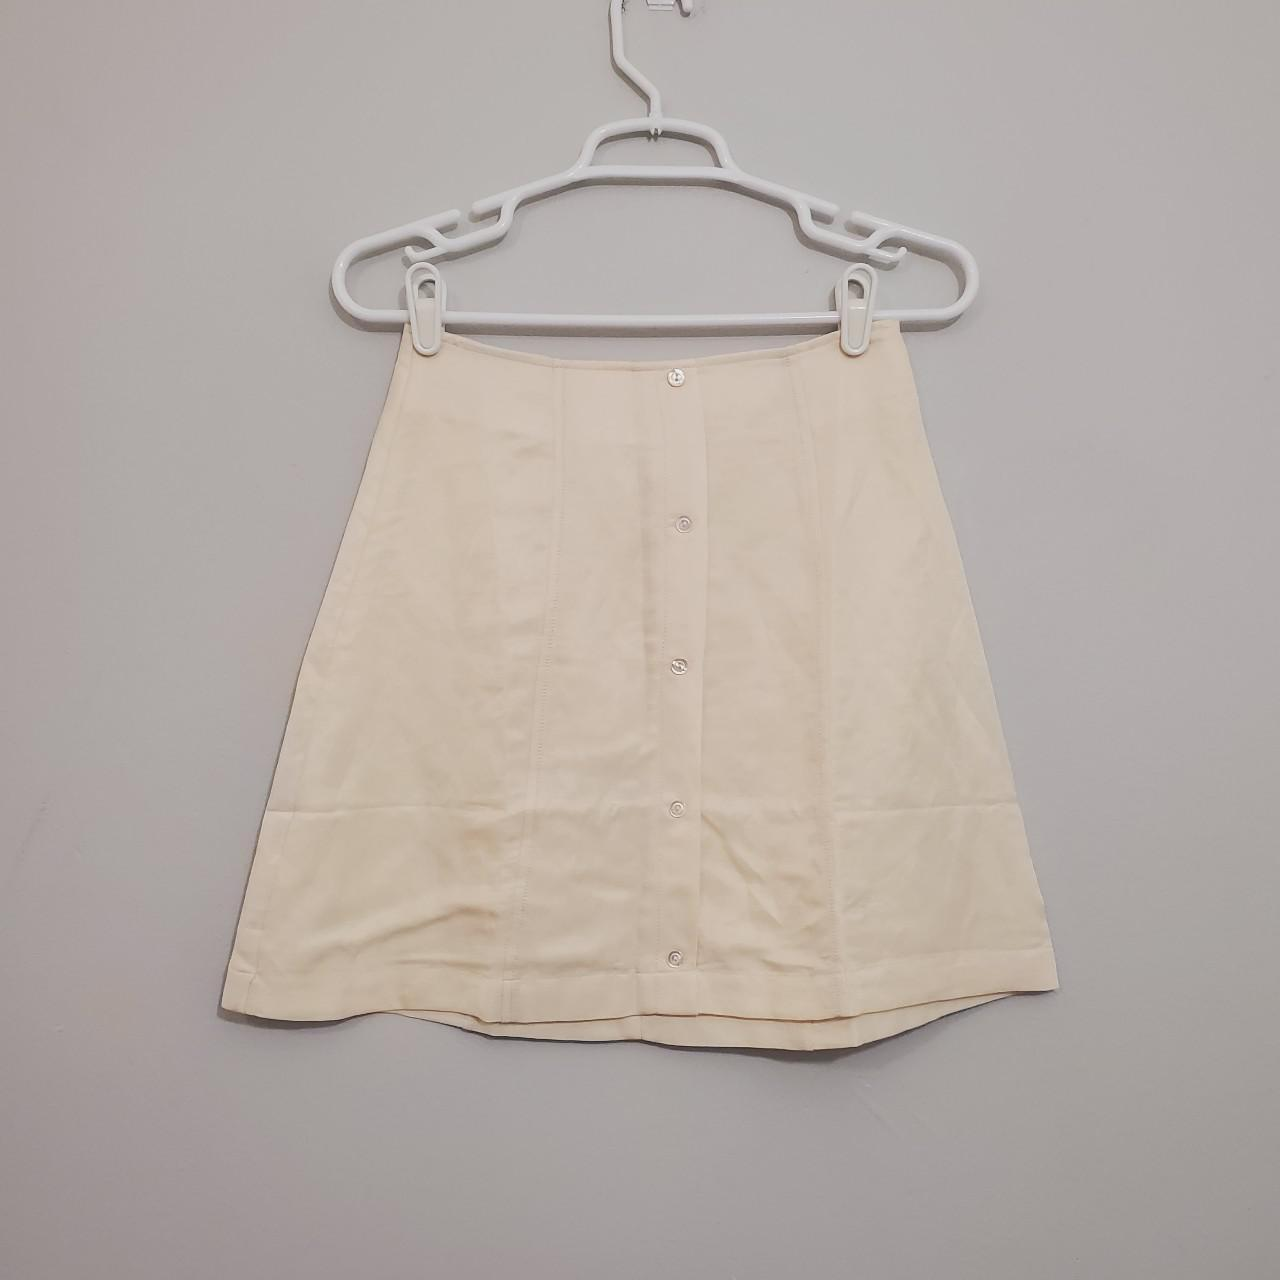 Product Image 1 - NWT Capulet skirt, size small.